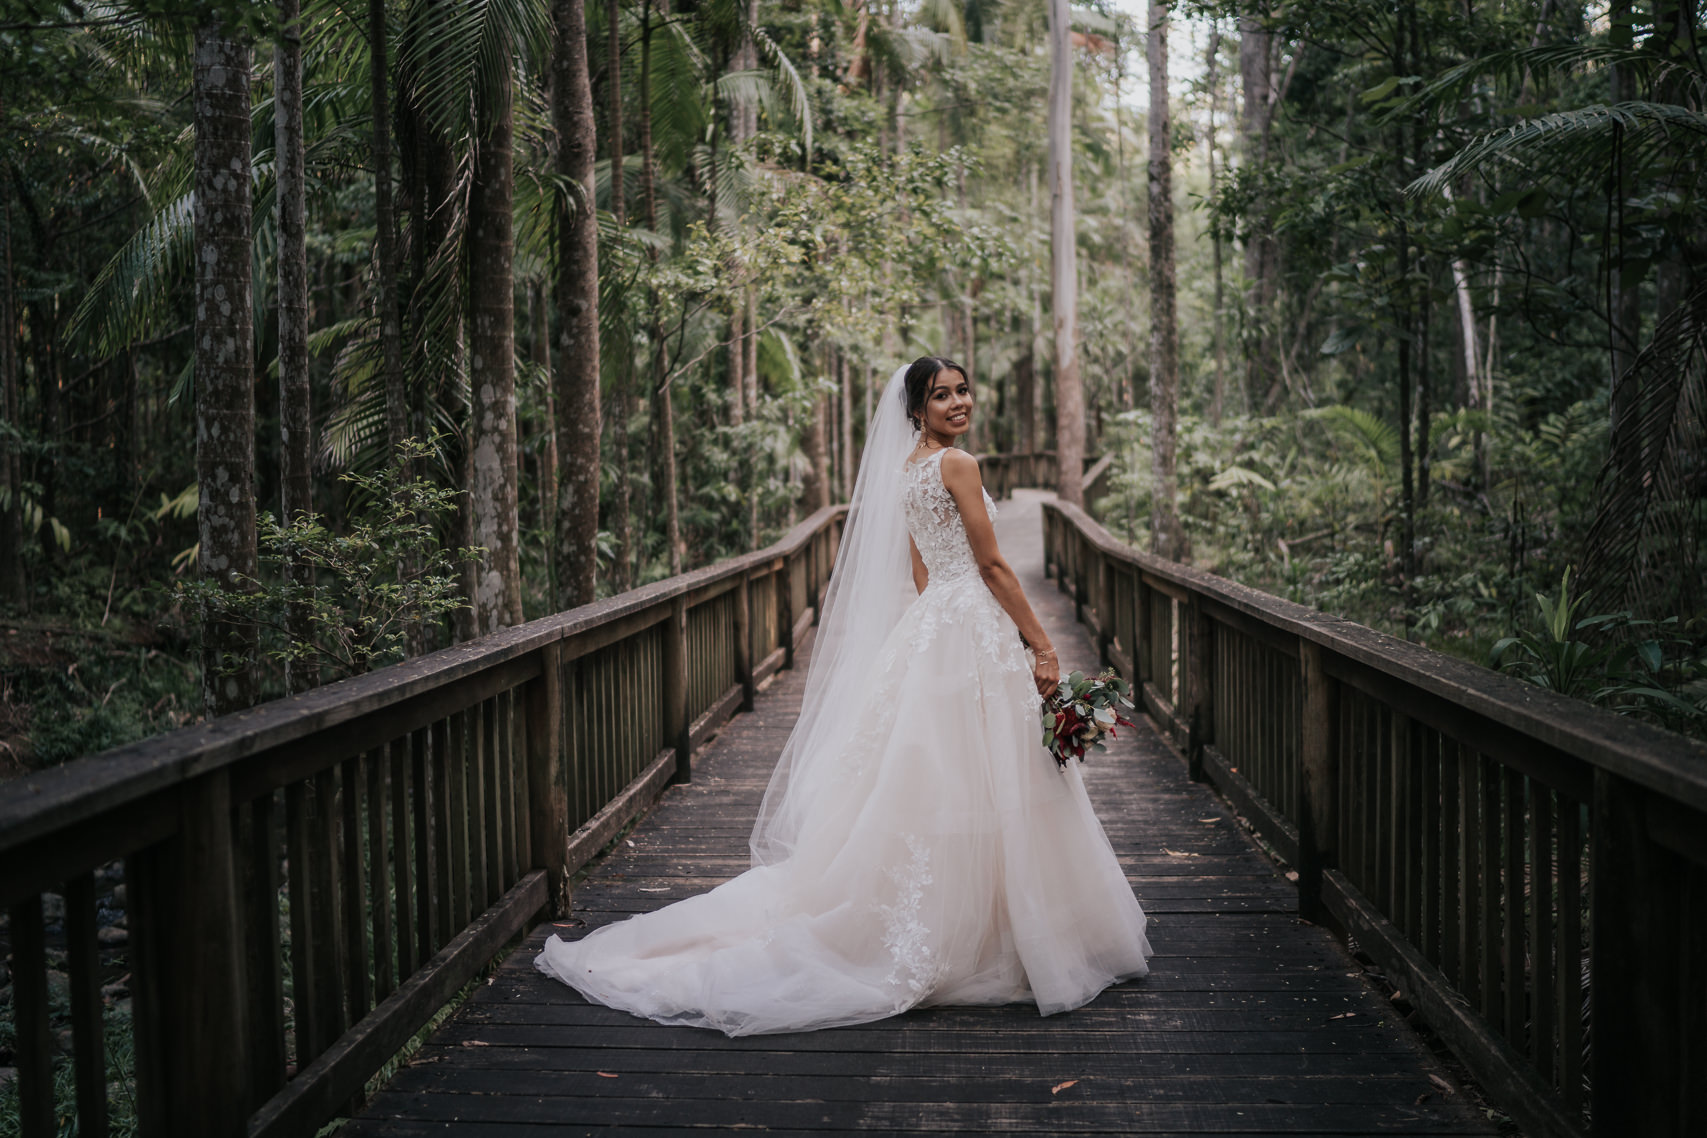 wedding photography Harrys lane buderim - bridal portrait